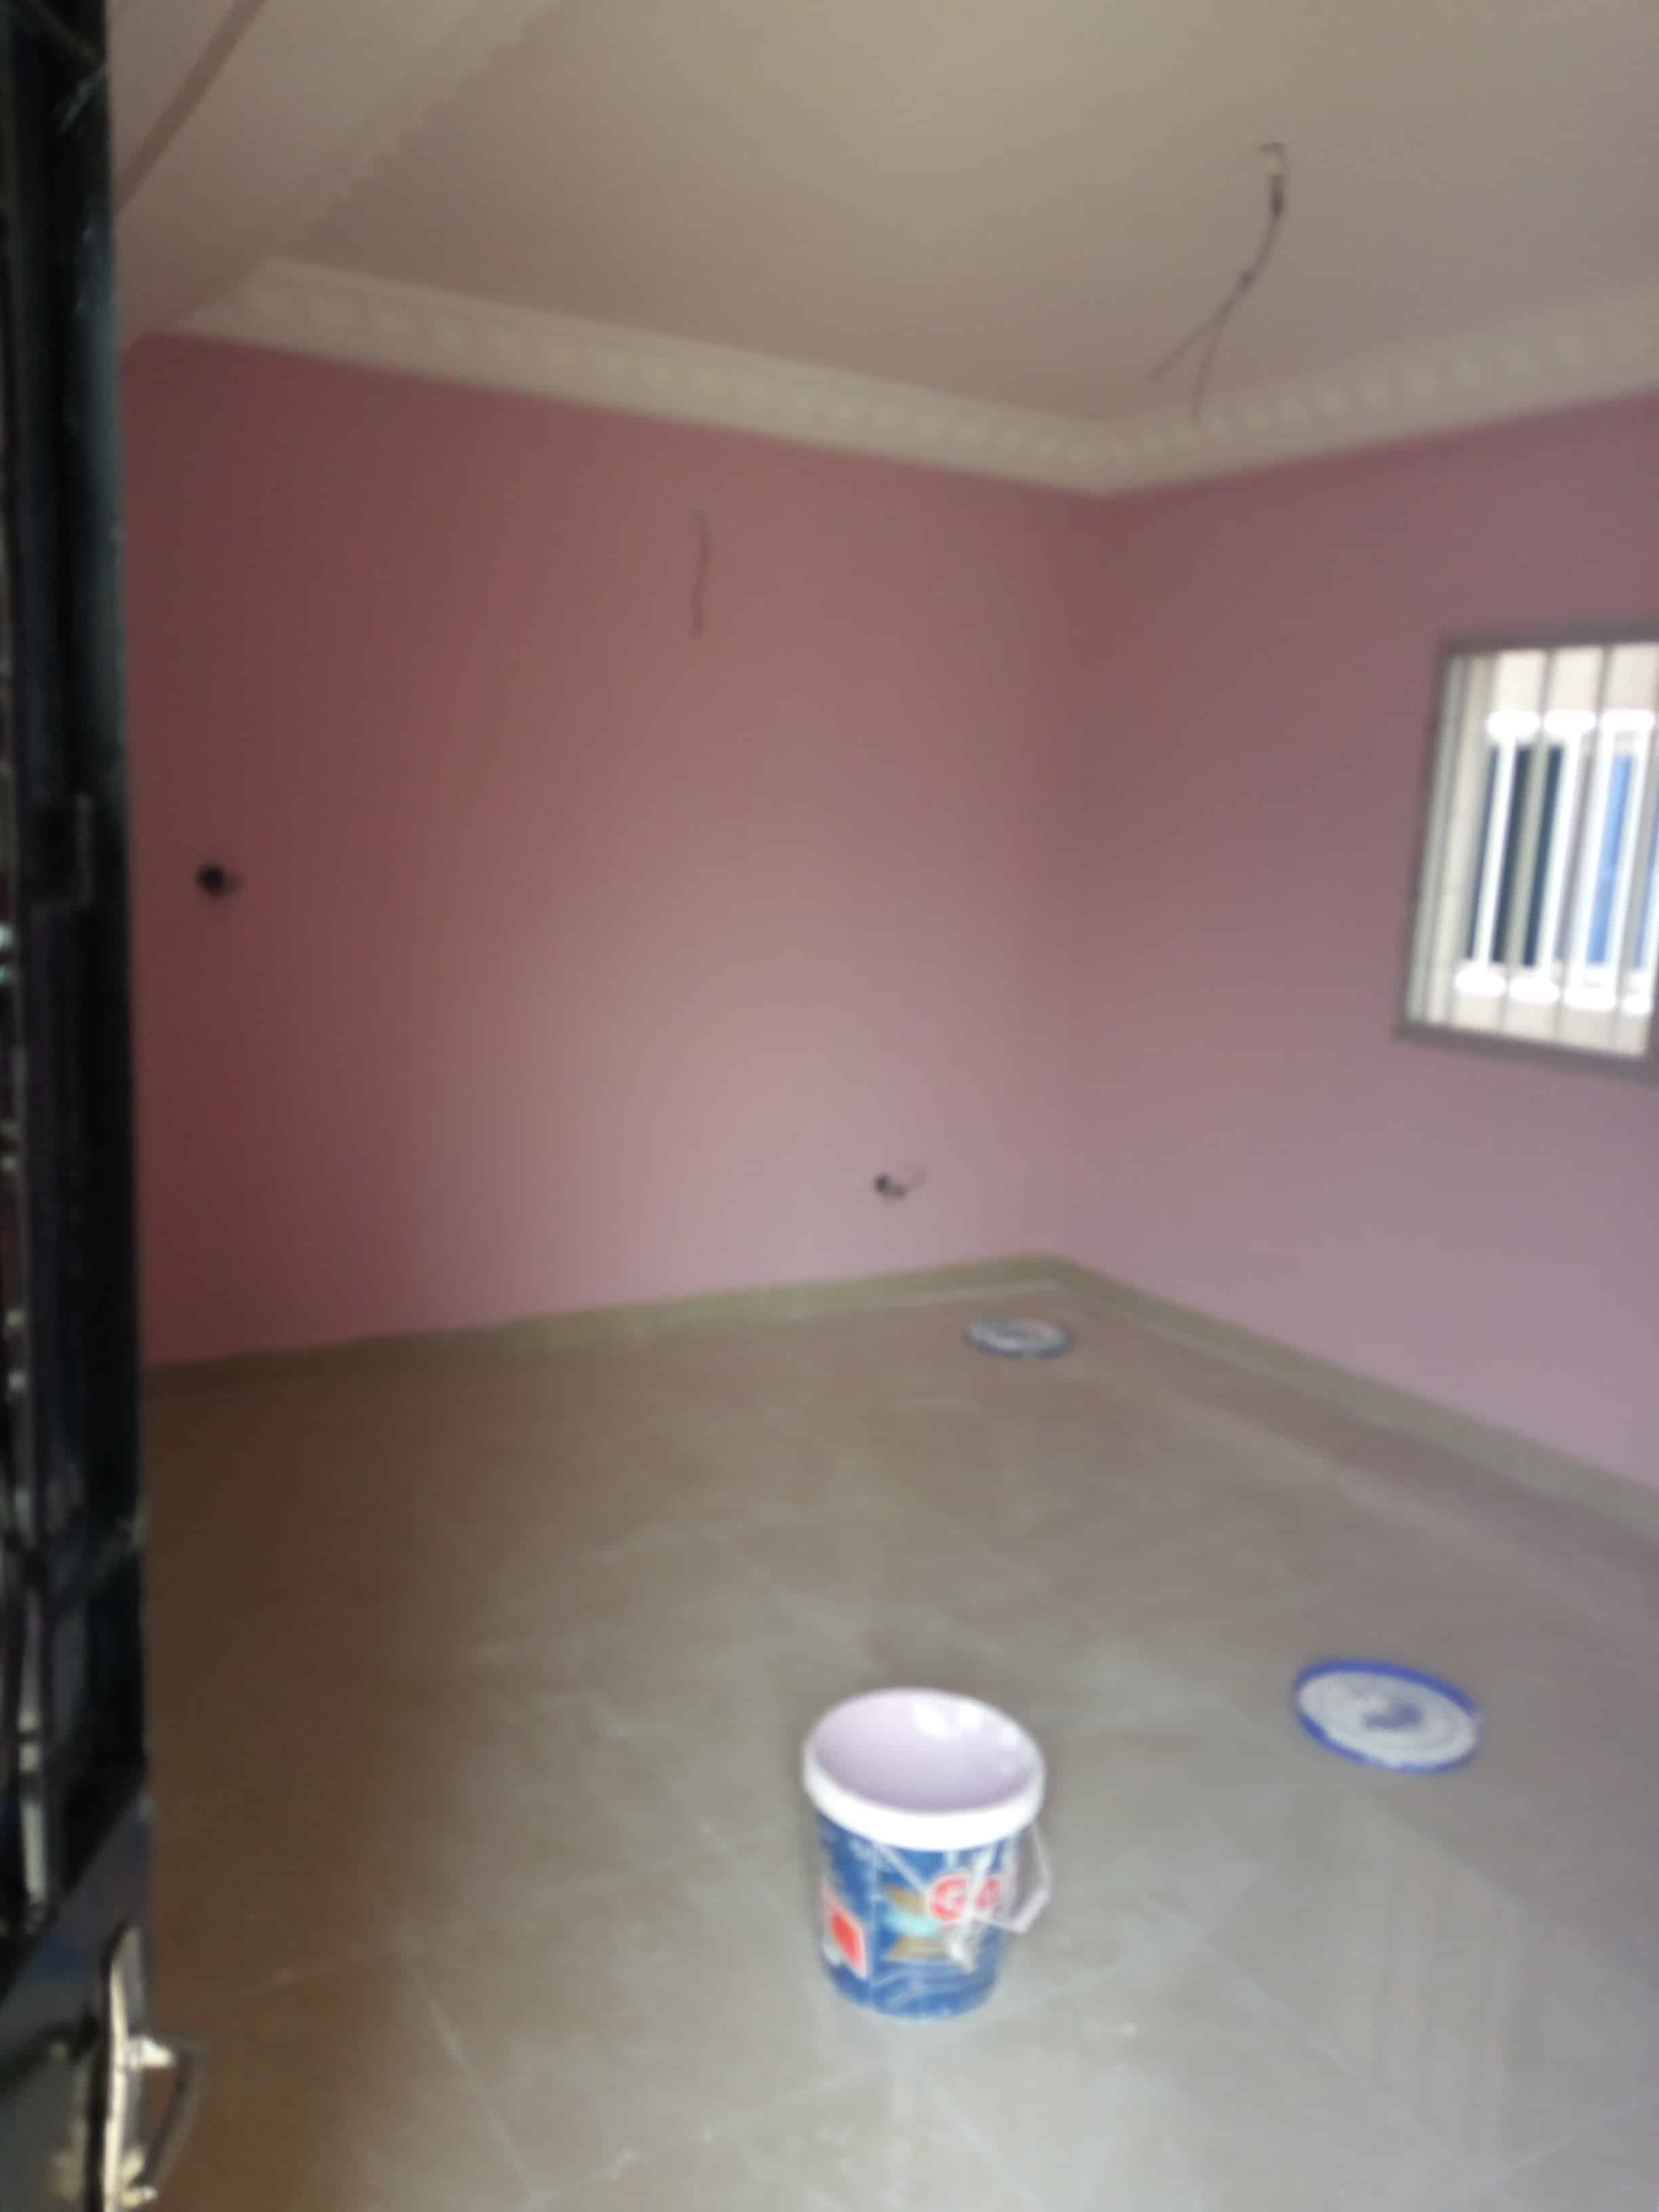 Apartment to rent - Douala, Akwa I, Sapeur - 1 living room(s), 1 bedroom(s), 1 bathroom(s) - 120 000 FCFA / month